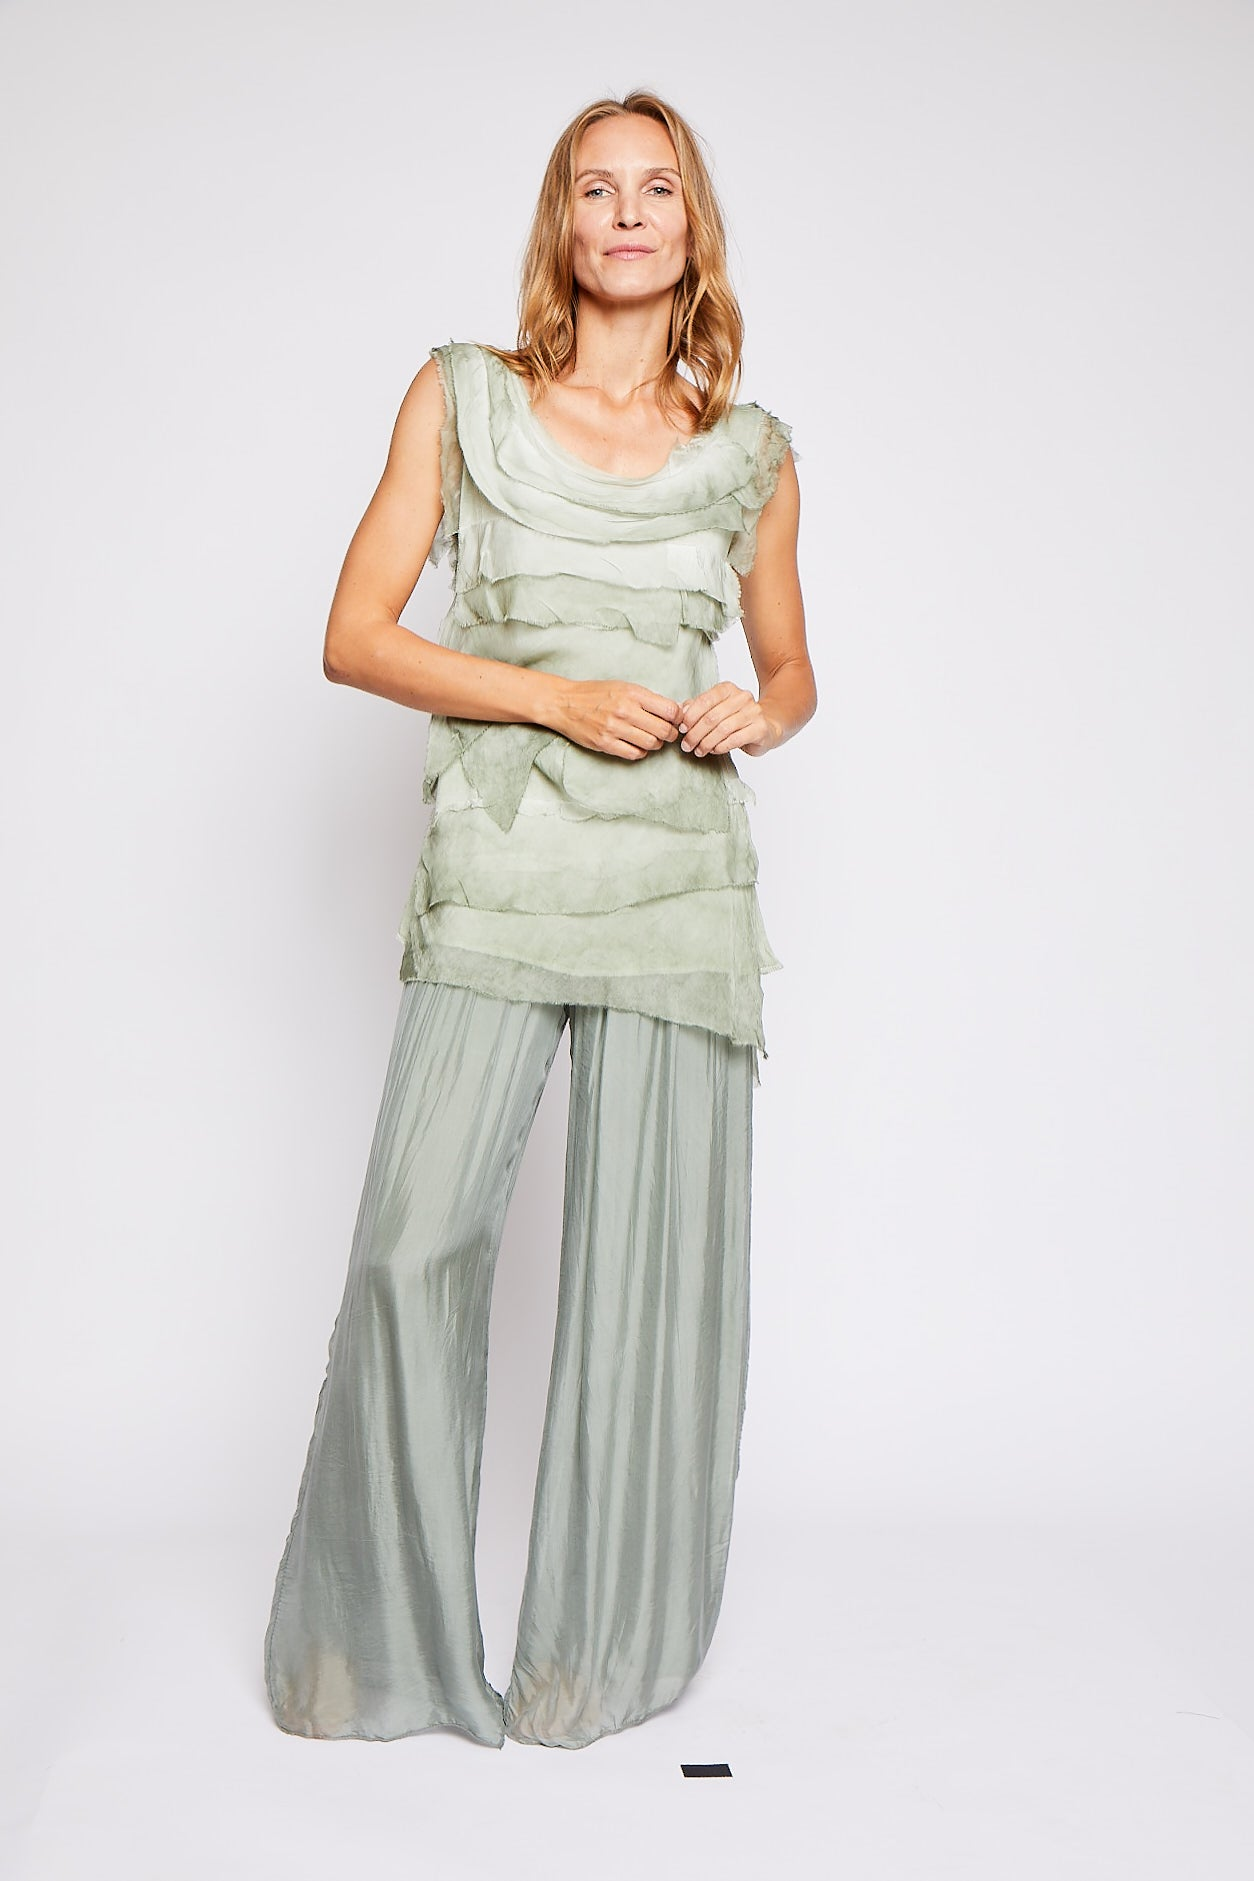 Italian Silk Layered Tank - Jacqueline B Clothing